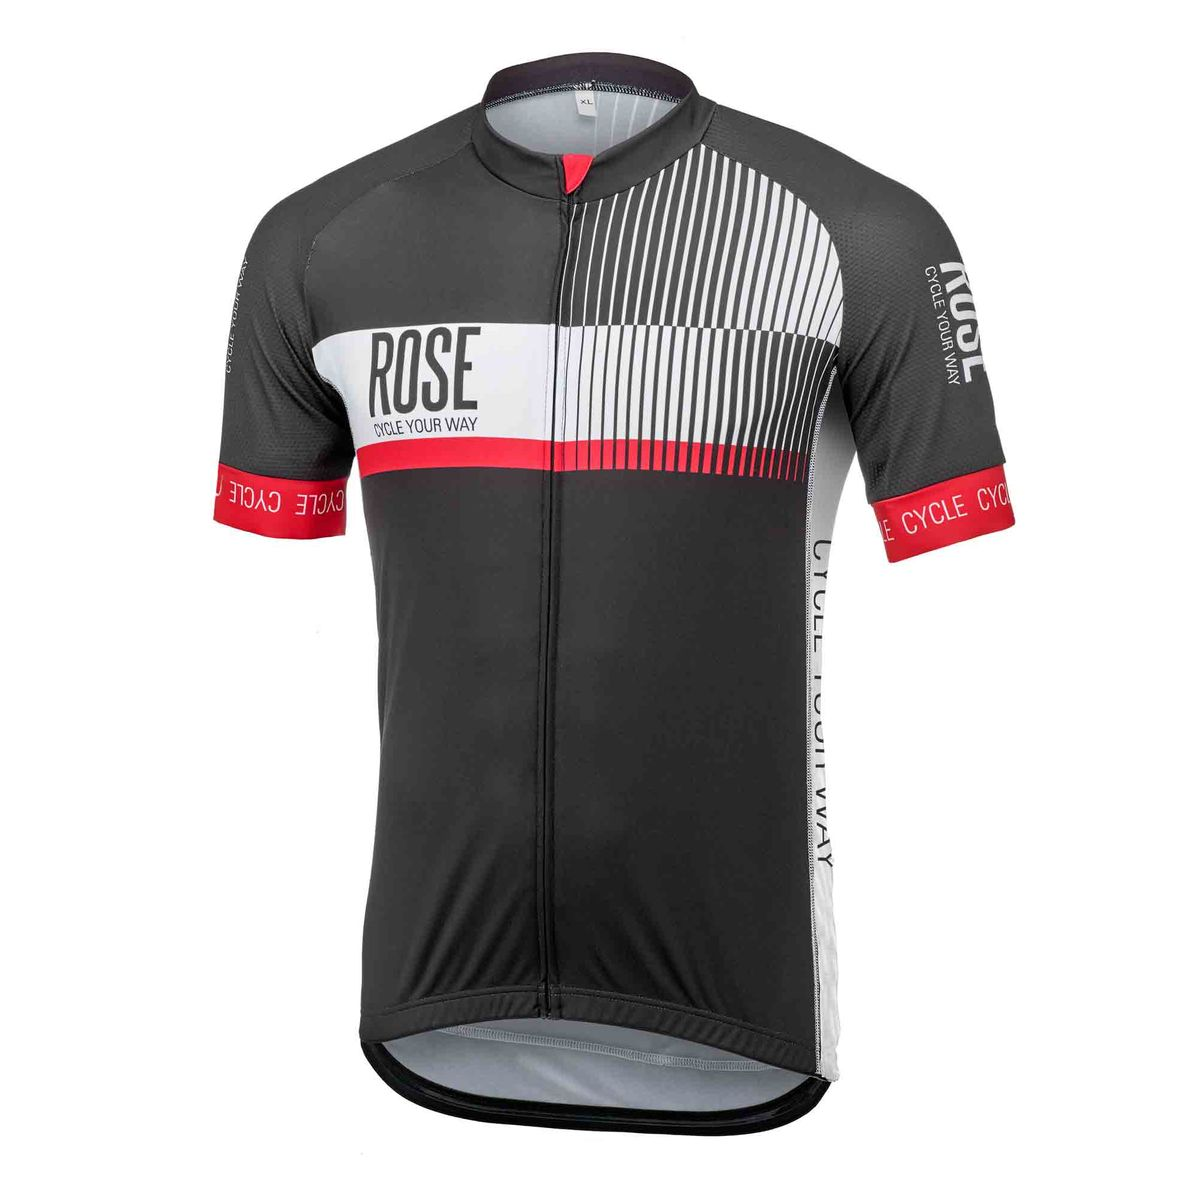 TOP CYW short-sleeved jersey